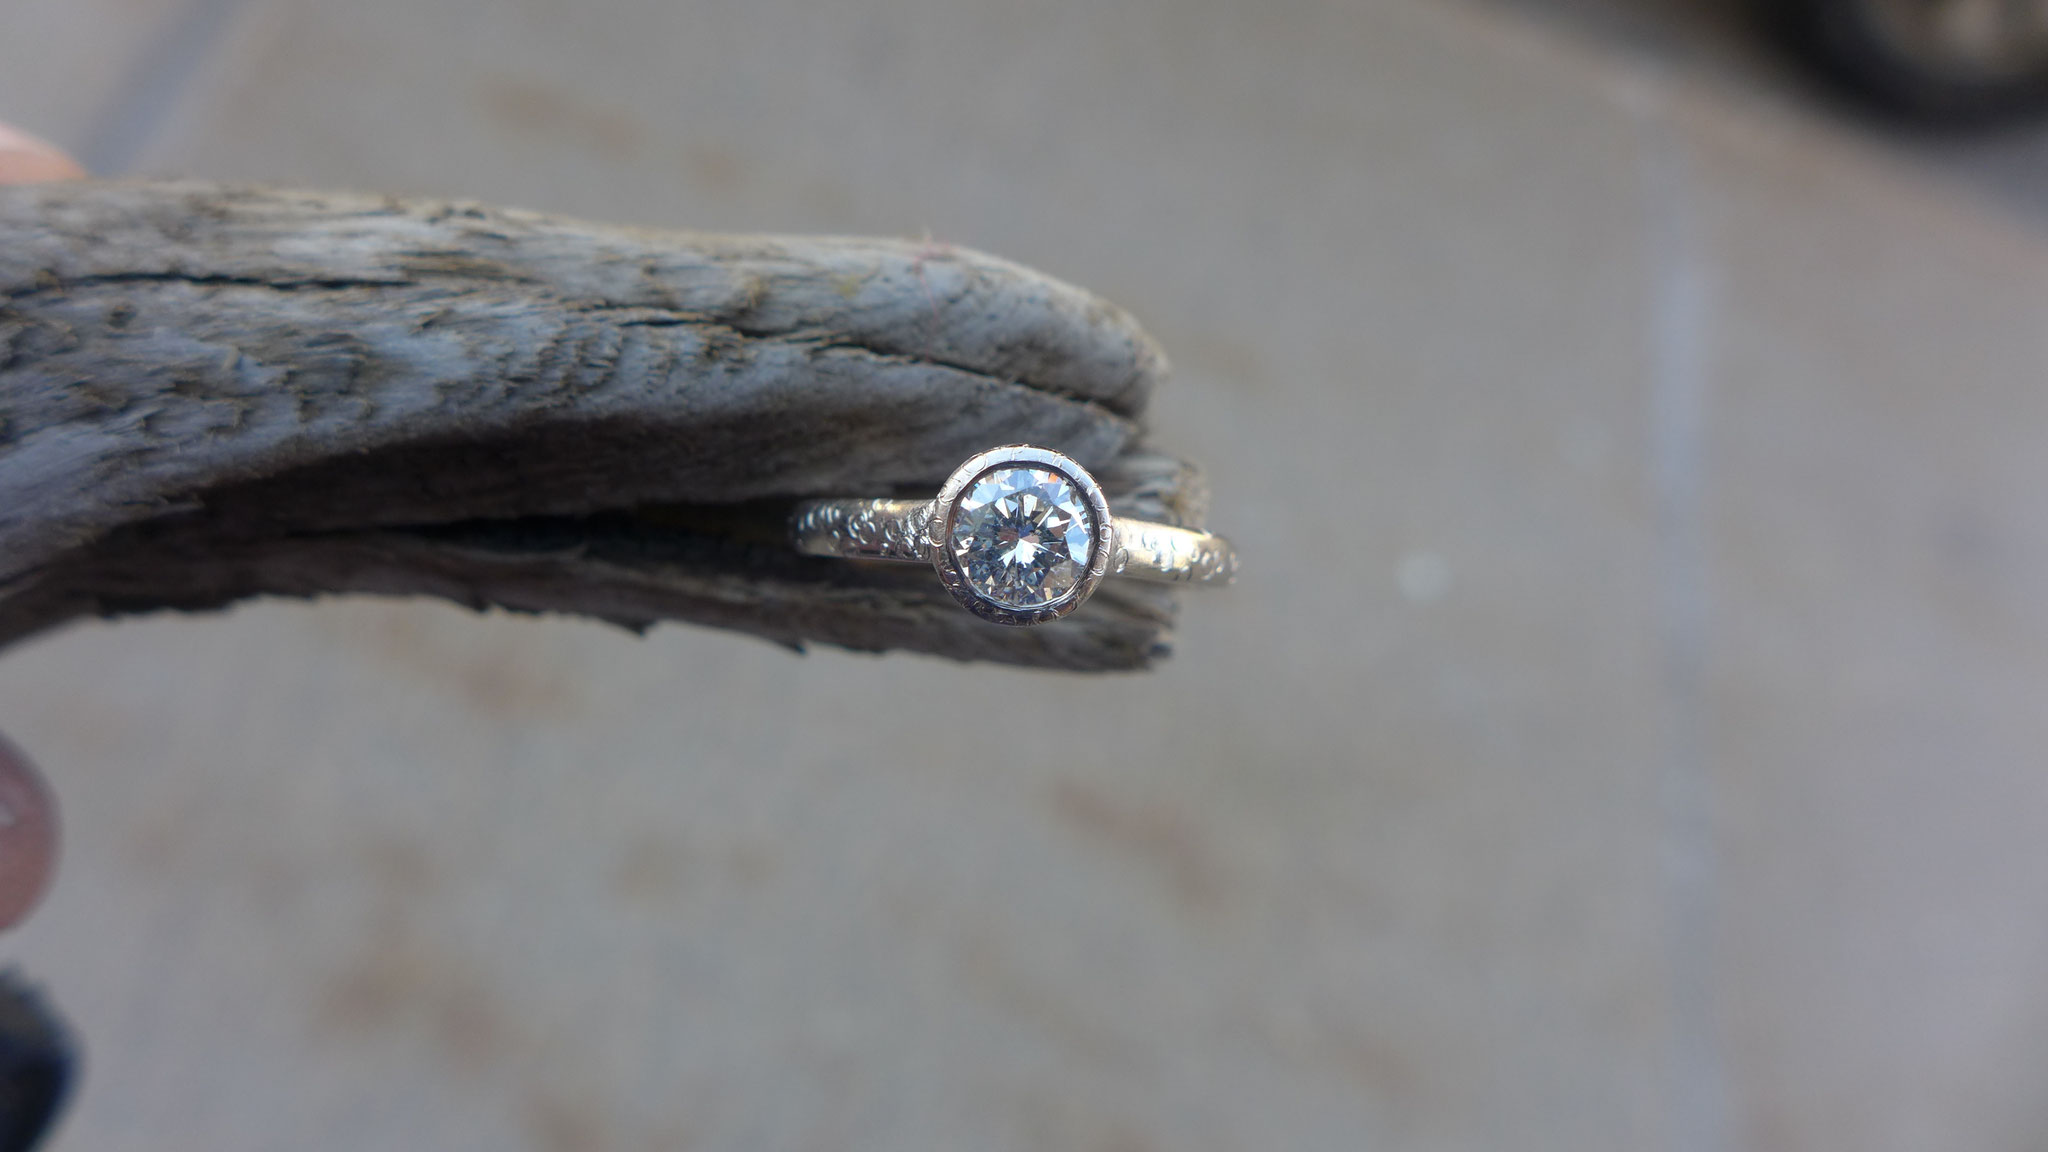 18k white gold, 0.48ct diamond